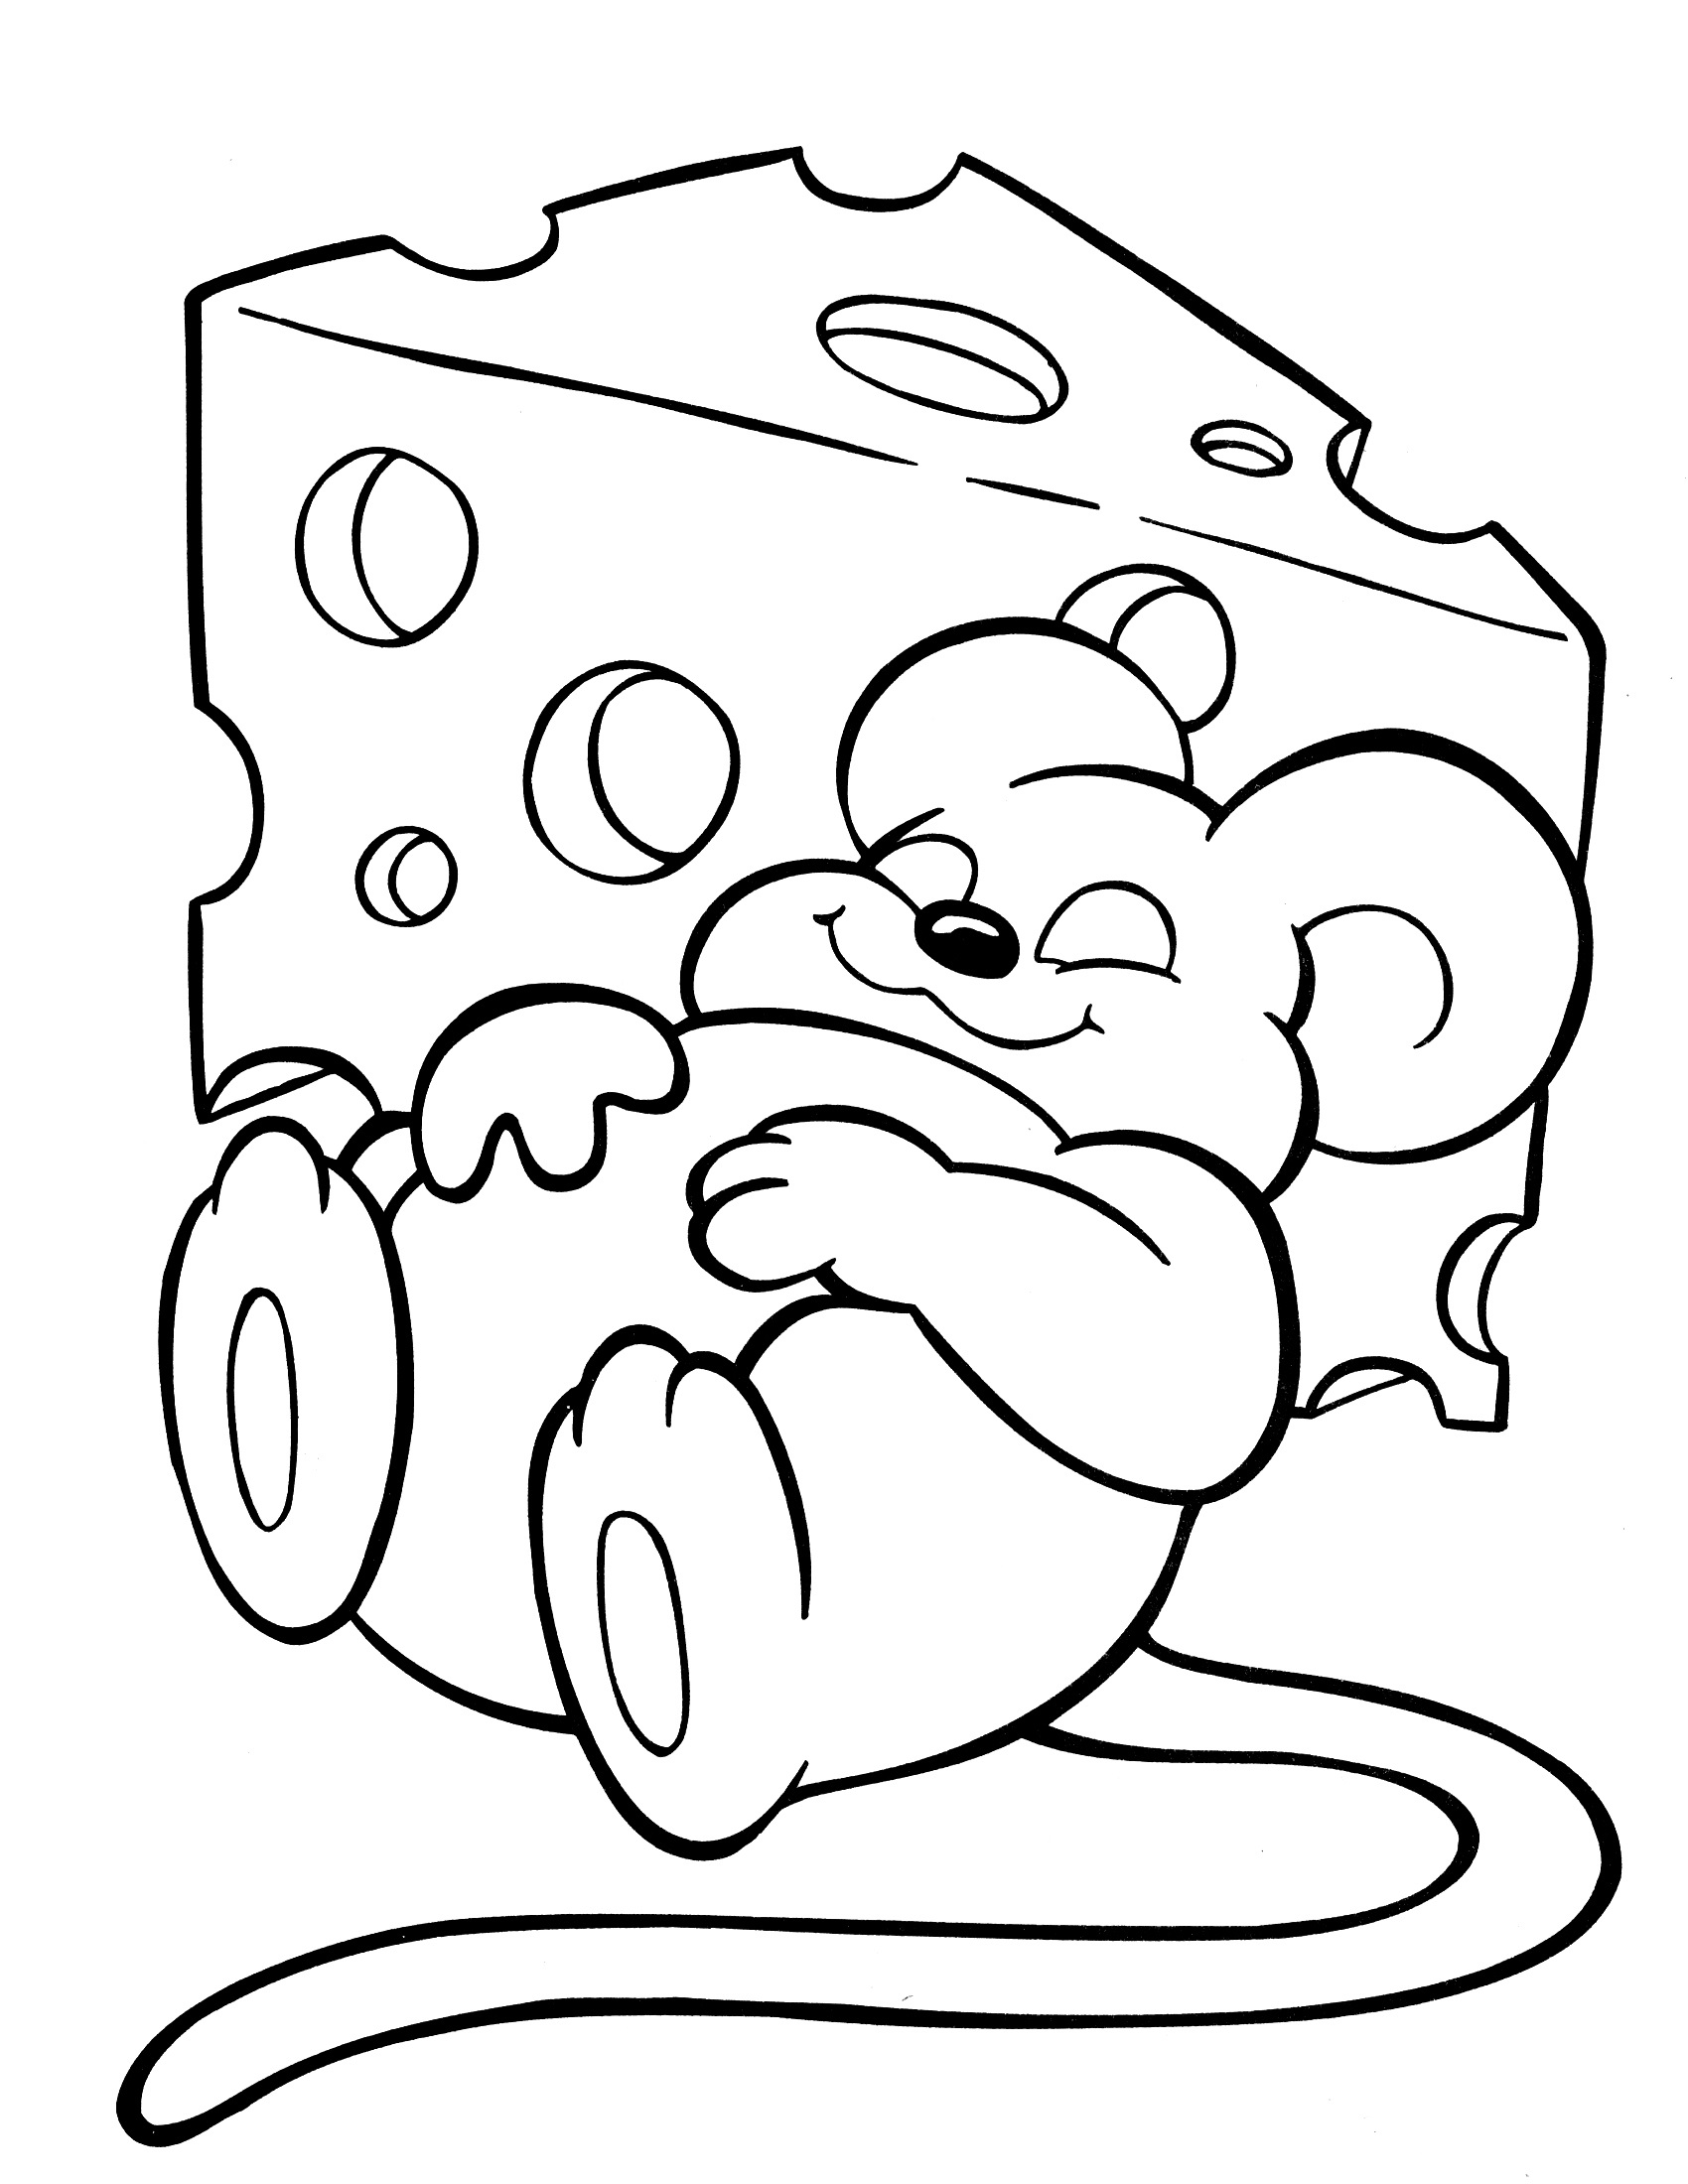 crayola coloring pages 3